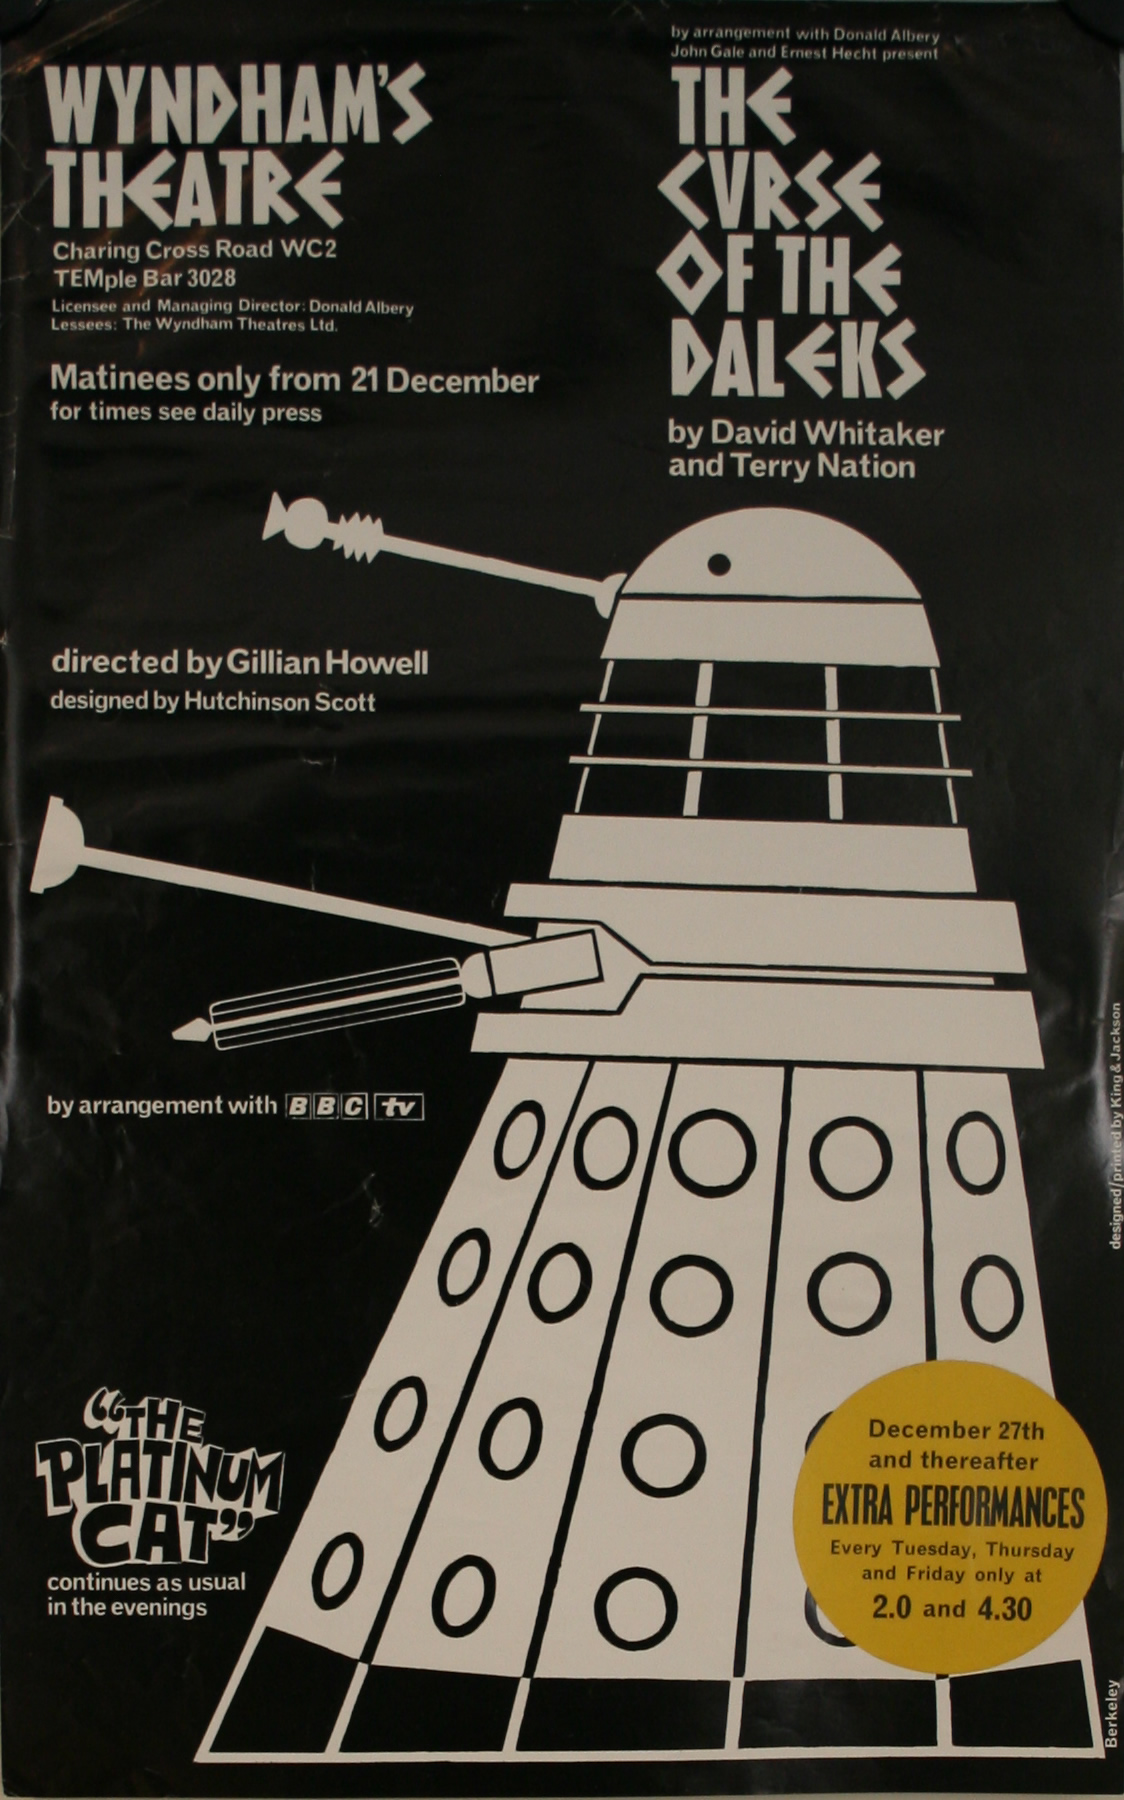 The Curse of the Daleks advertising poster